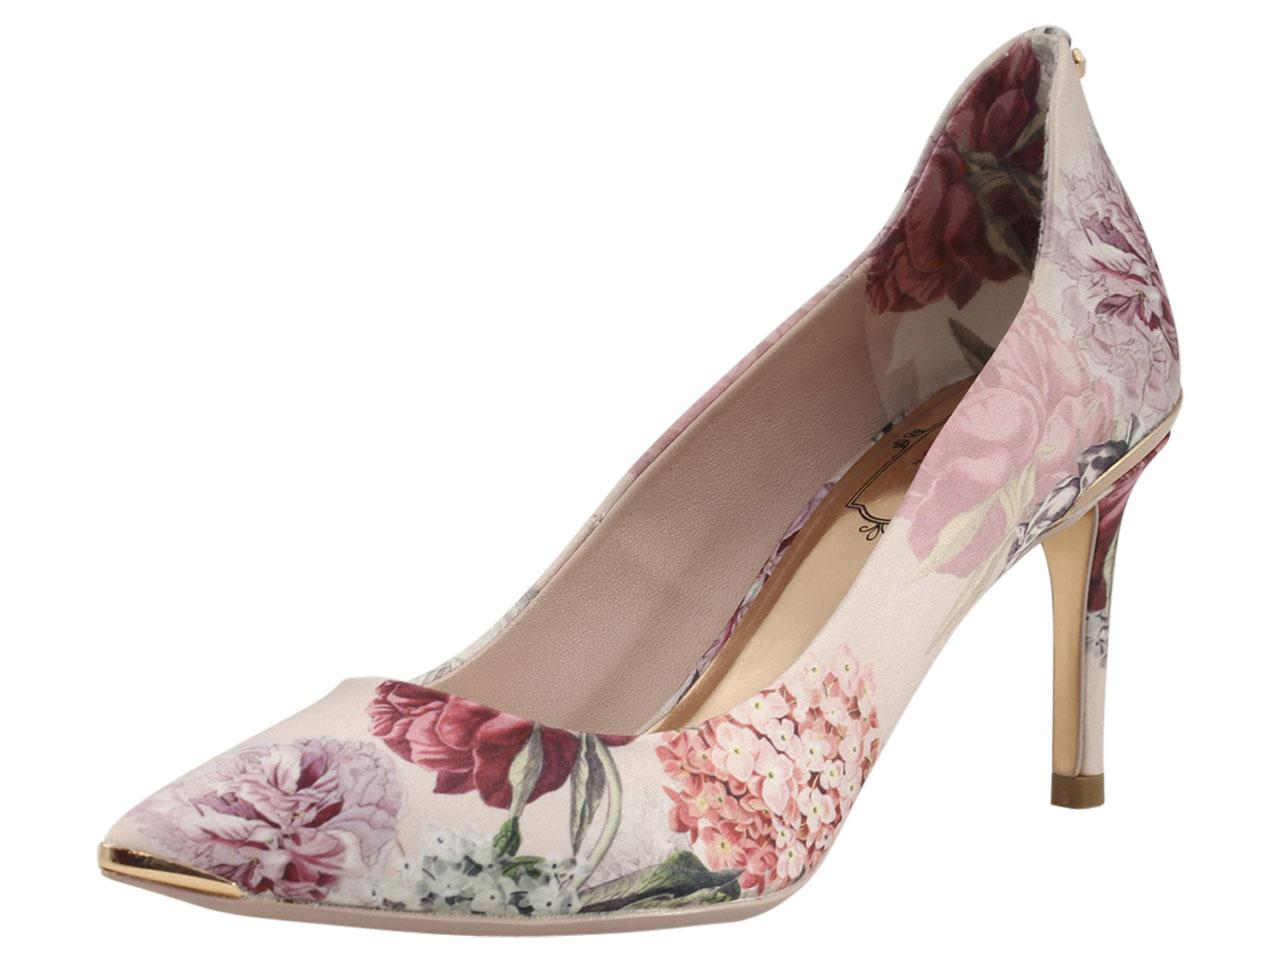 c9b38605837485 Ted Baker Women s Vyixyn-P-2 Pumps Heels Shoes